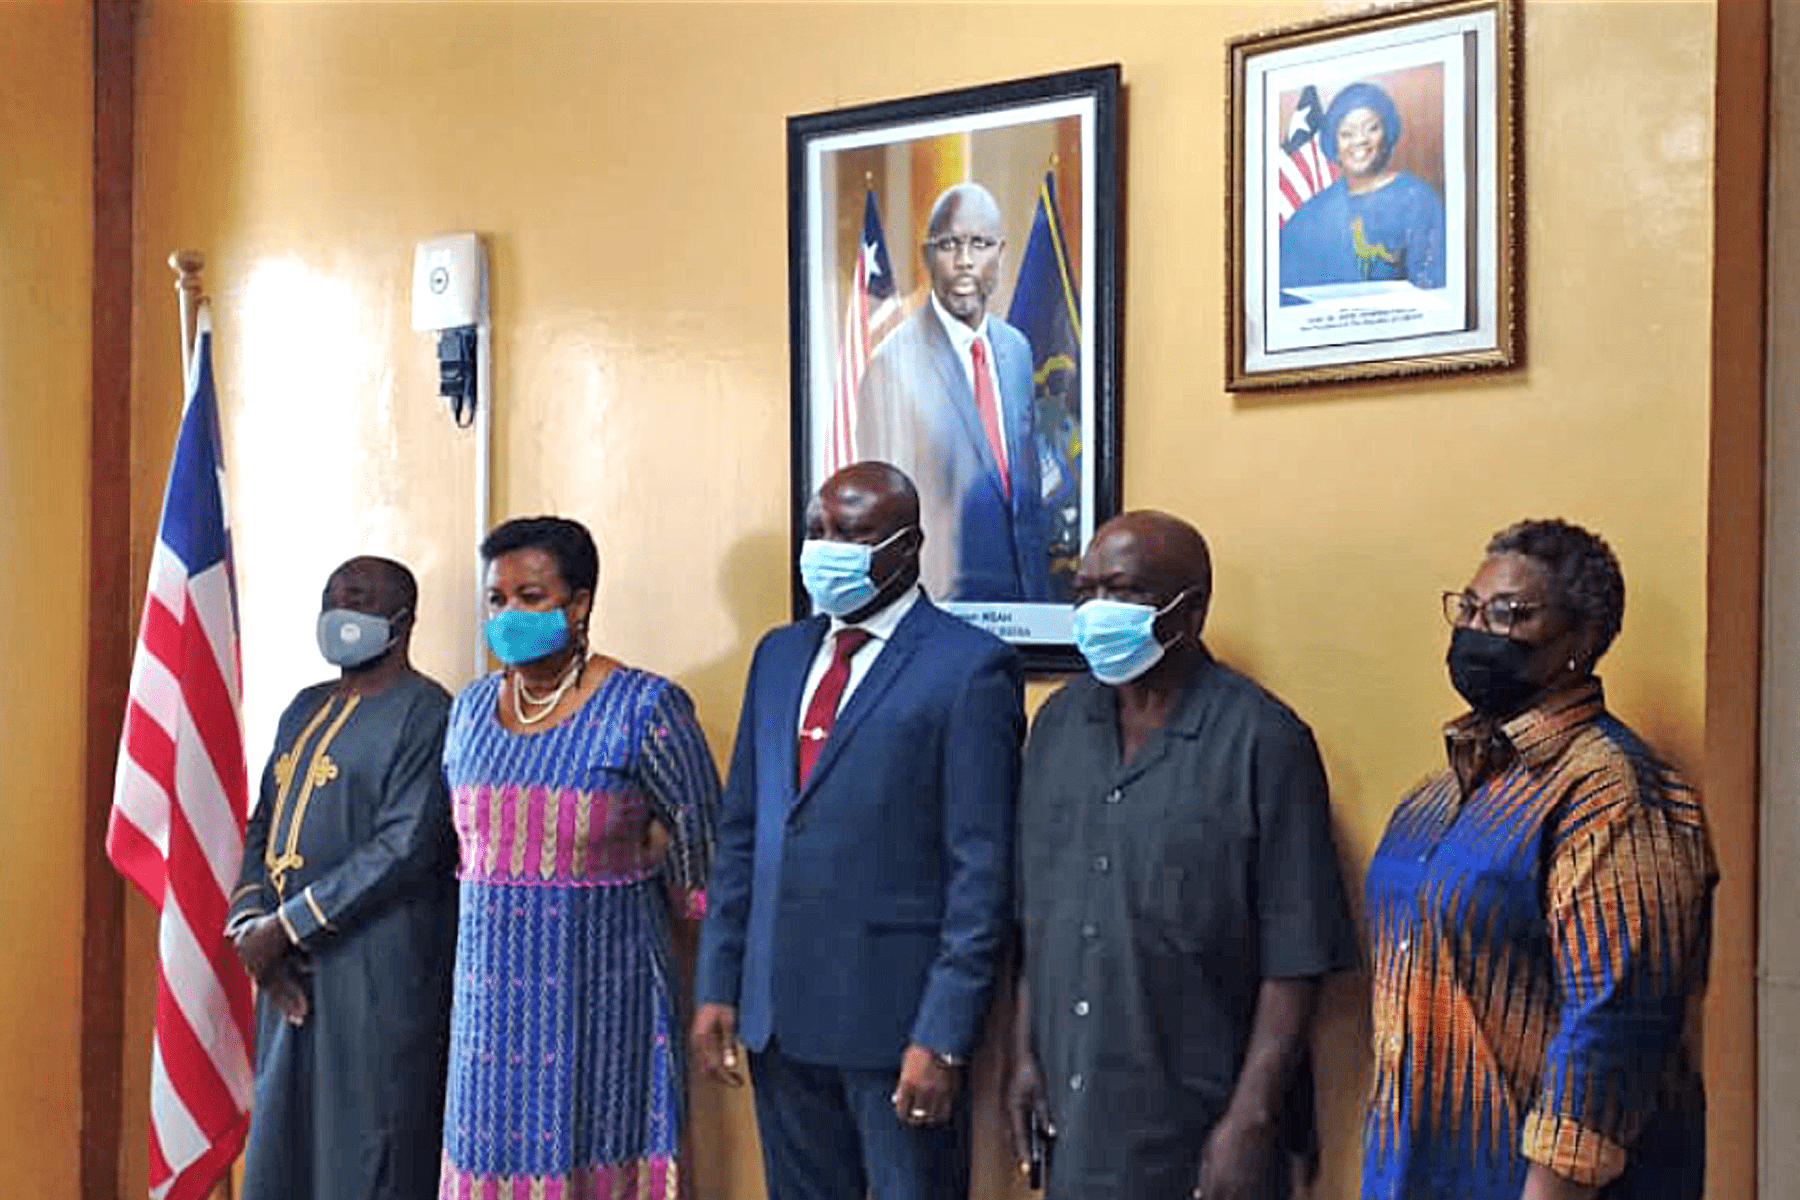 AfricaRice and Liberia solidify ties